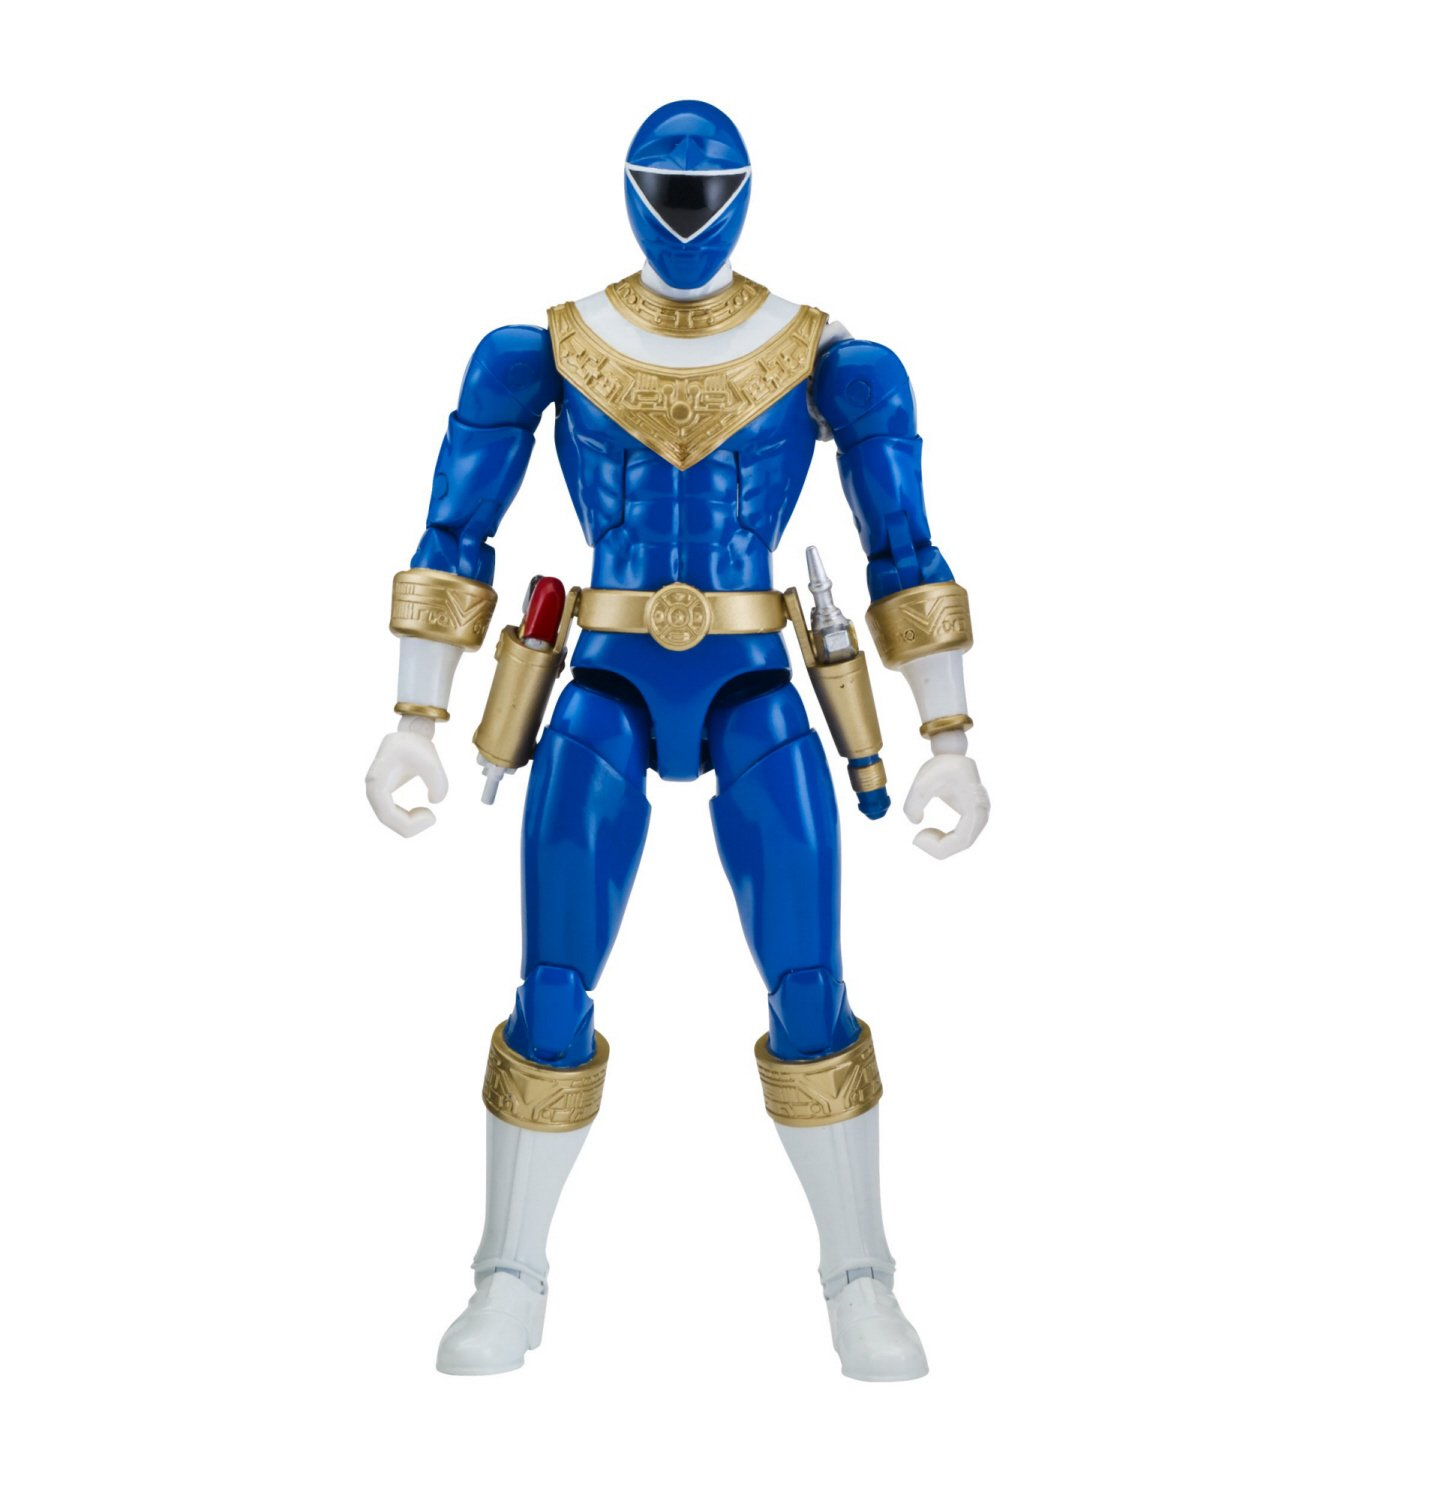 Power Rangers Zeo Action Figure, Blue by Power Rangers (Image #3)